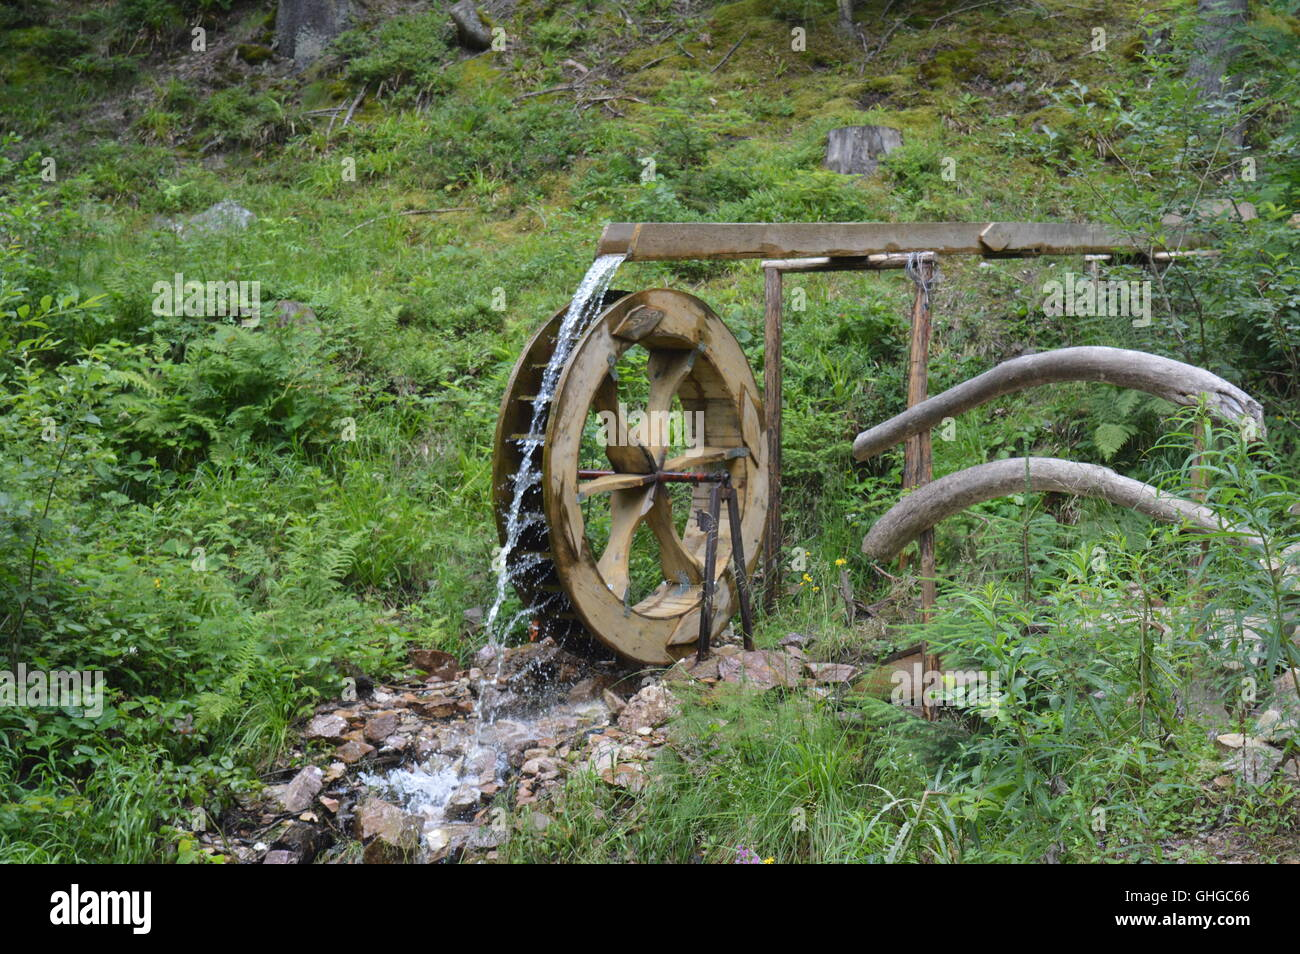 A mill wheel in a forest - Stock Image